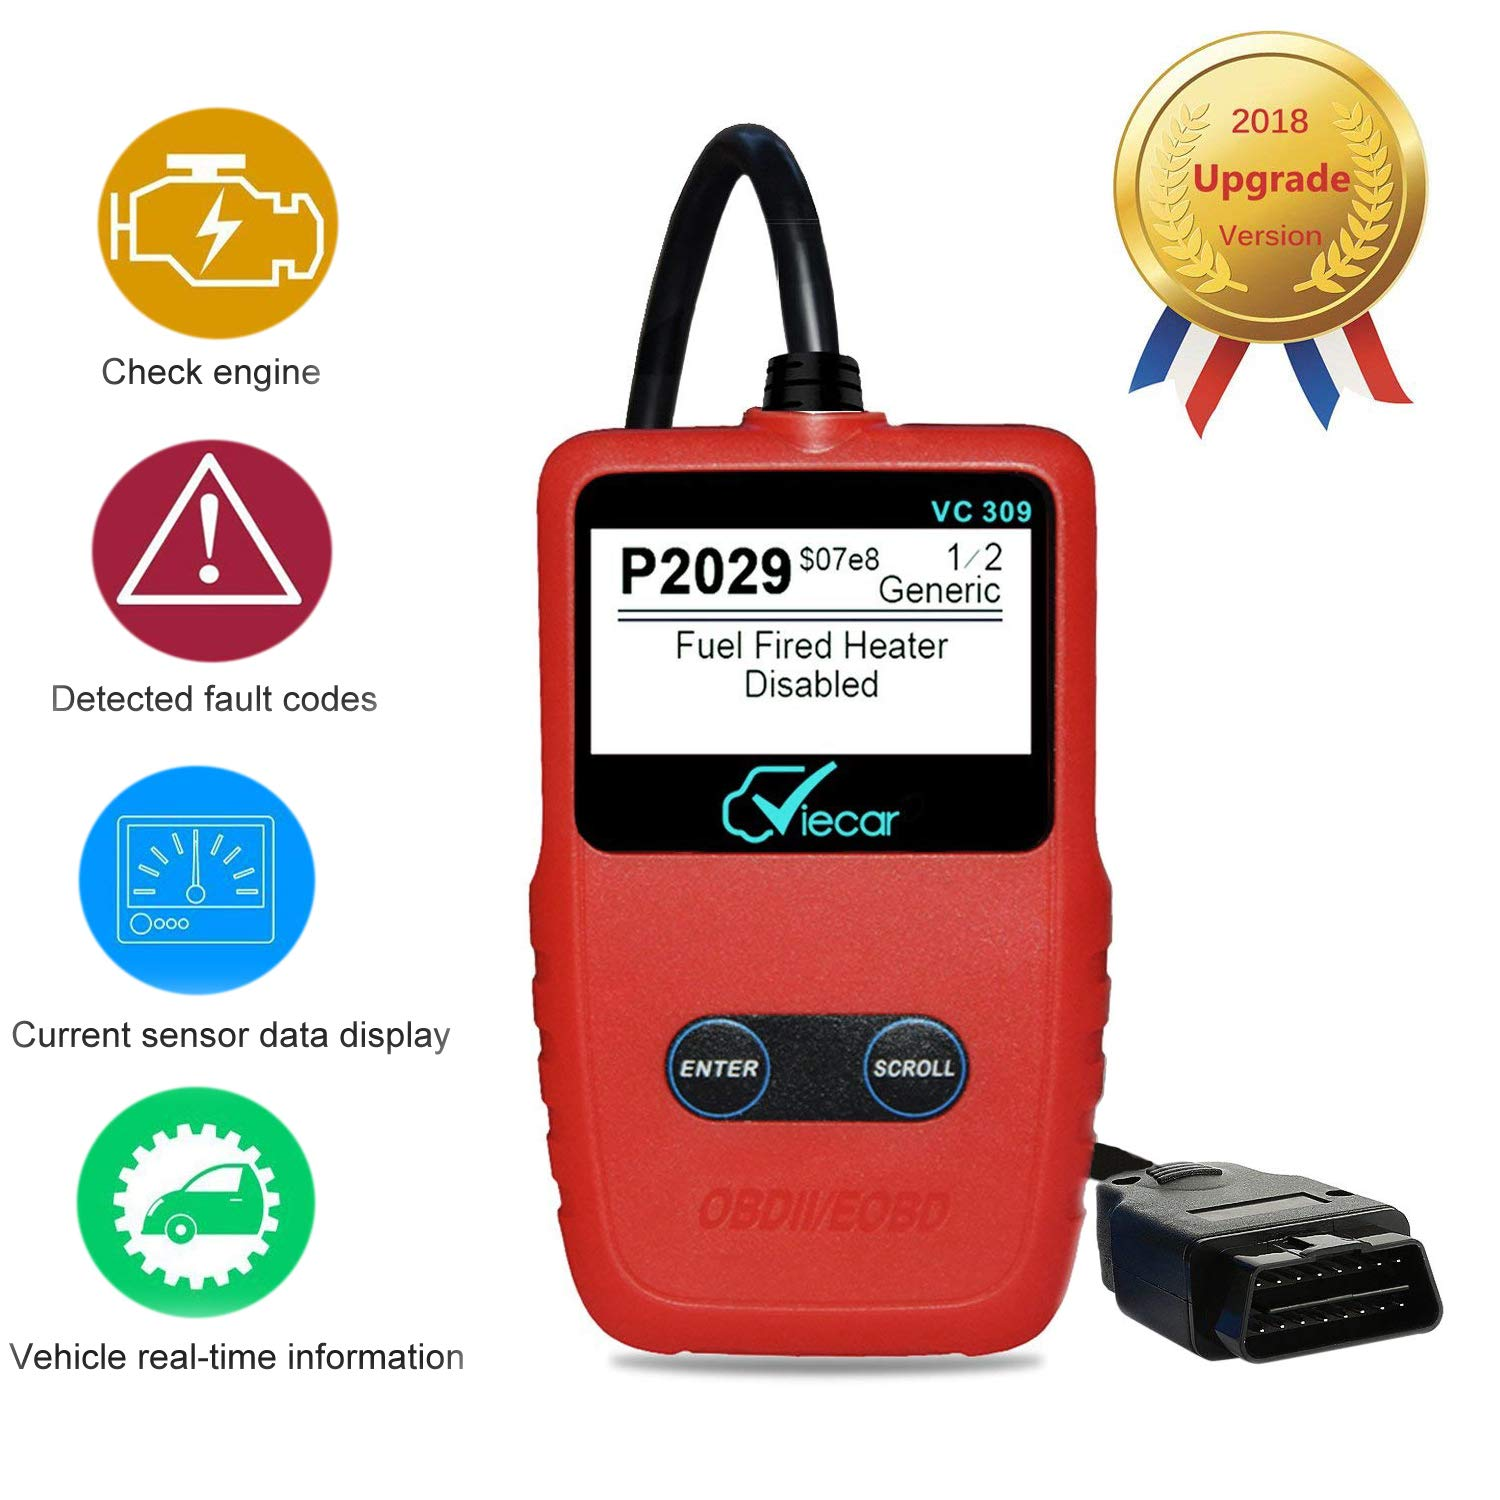 OBDII Code Scanner, OBD 2 Car Code Reader,LITOON Universal Automotive Vehicle Diagnostic Scan Tool For Check Engine Light Diagnostics,Support Read and Clear Error Codes